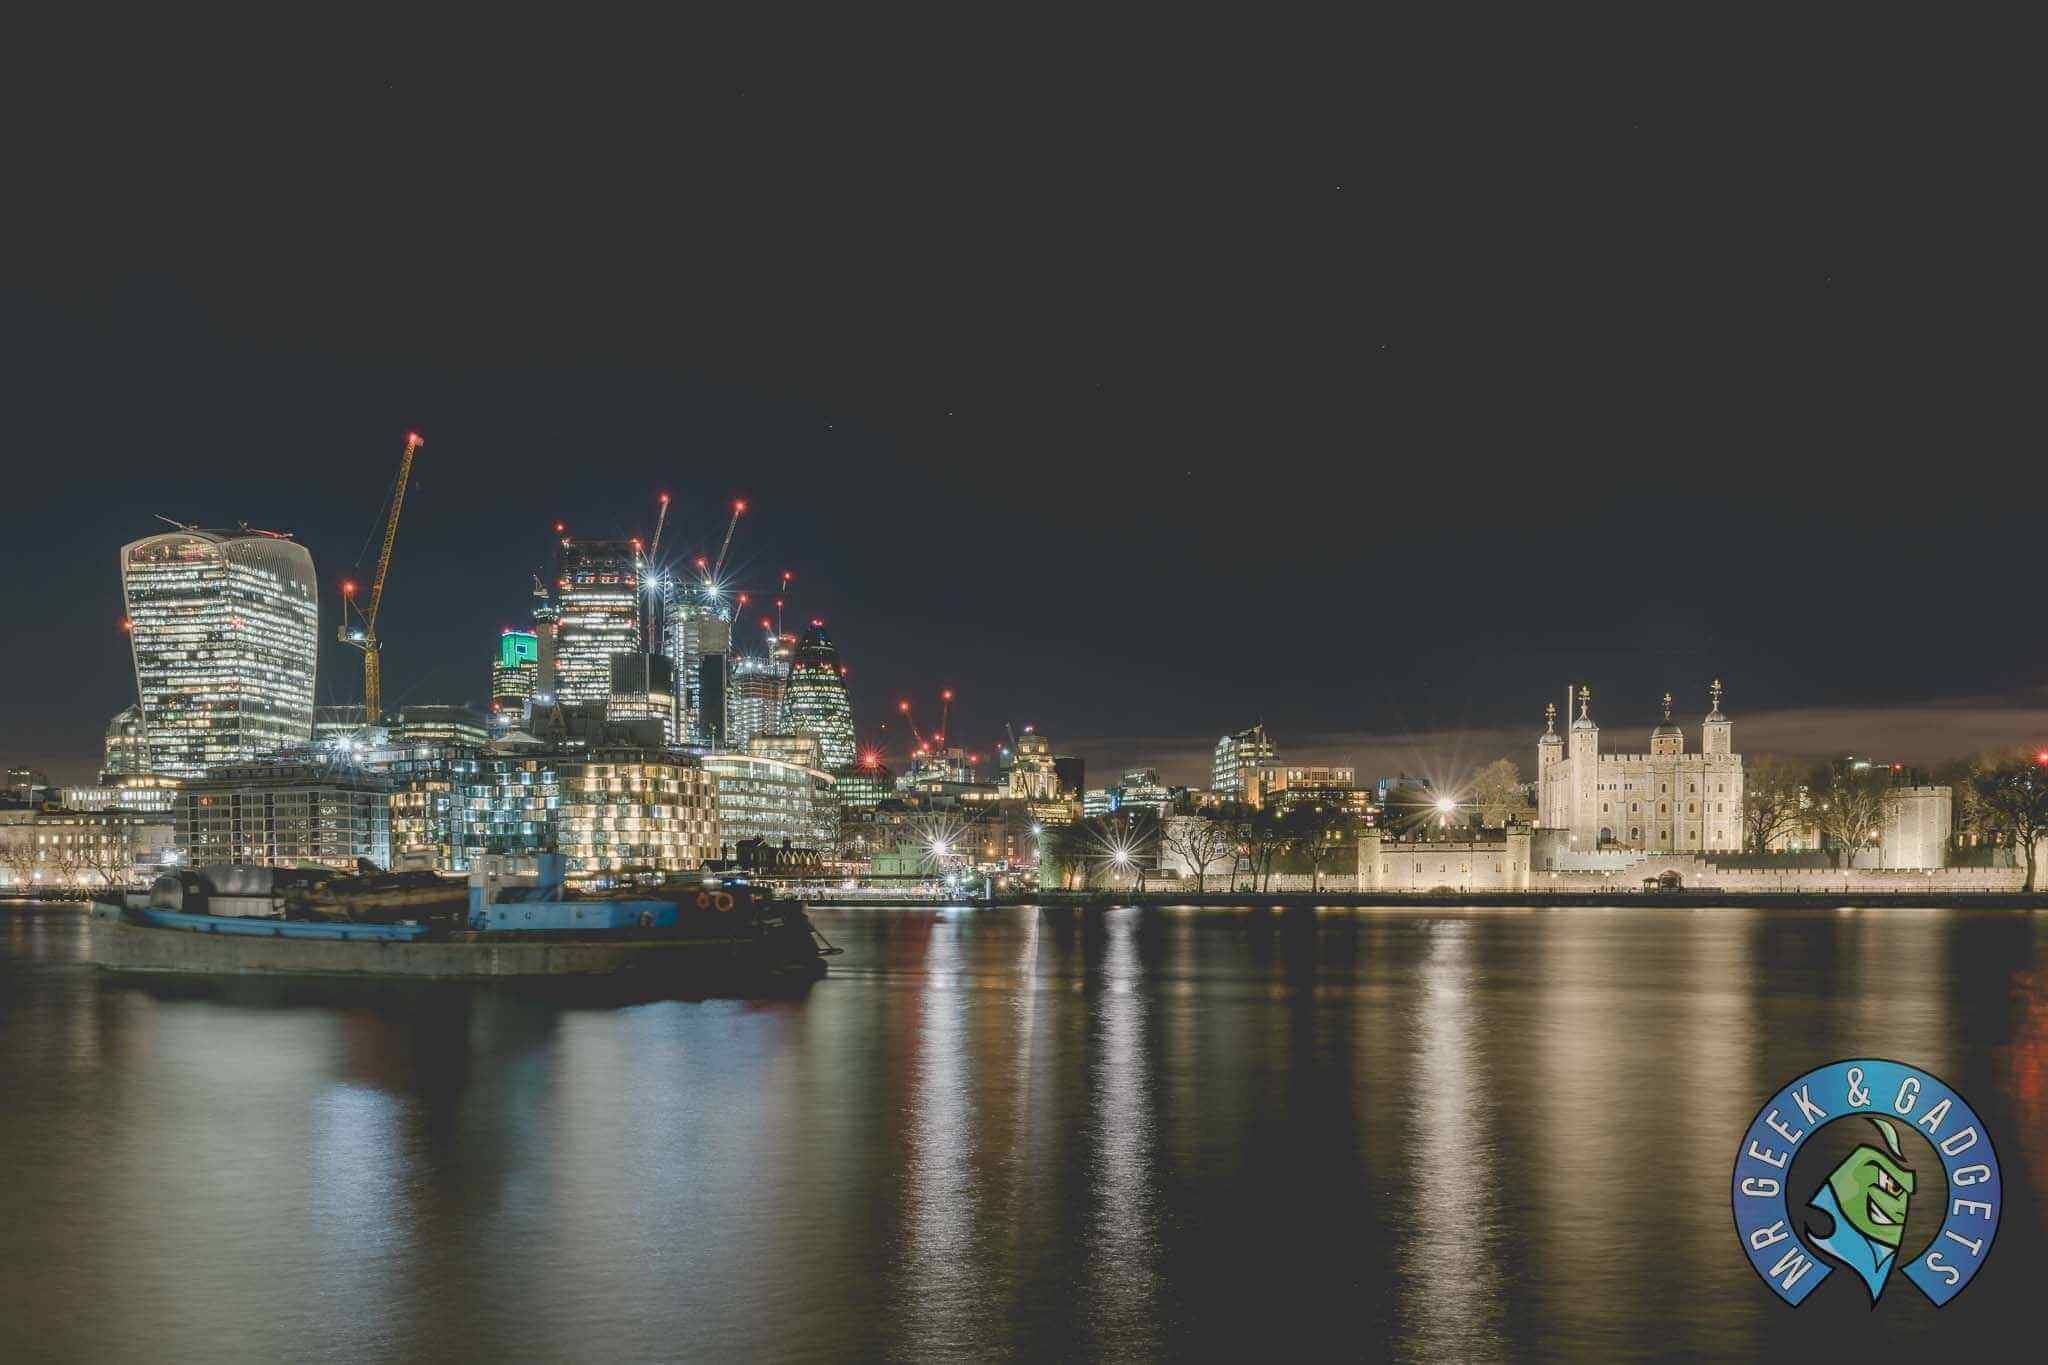 850_2022 | The Tower Of London and Why Its a Cool Place to Visit